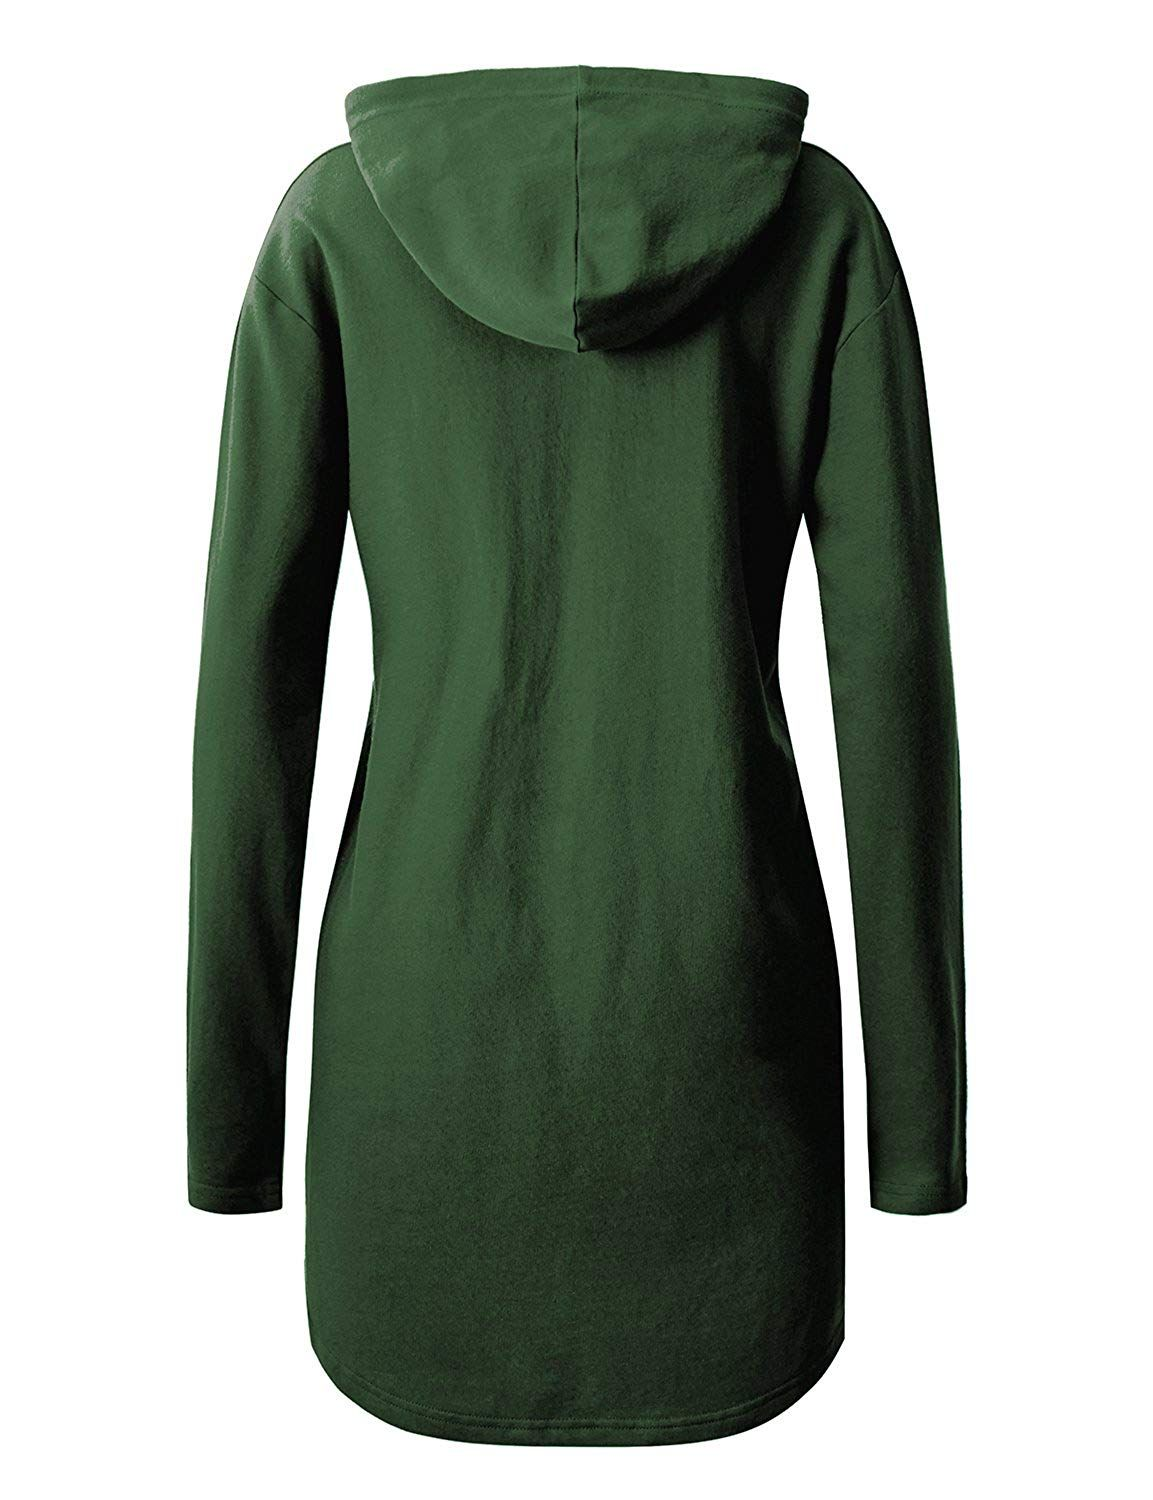 Regna X Women S Long Sleeve Casual Hoodie Dress With Kangaroo Pocket 10 Colors Plus Size Available F Plus Size Prom Dresses Long Hoodie Long Sleeve Casual [ 1500 x 1153 Pixel ]